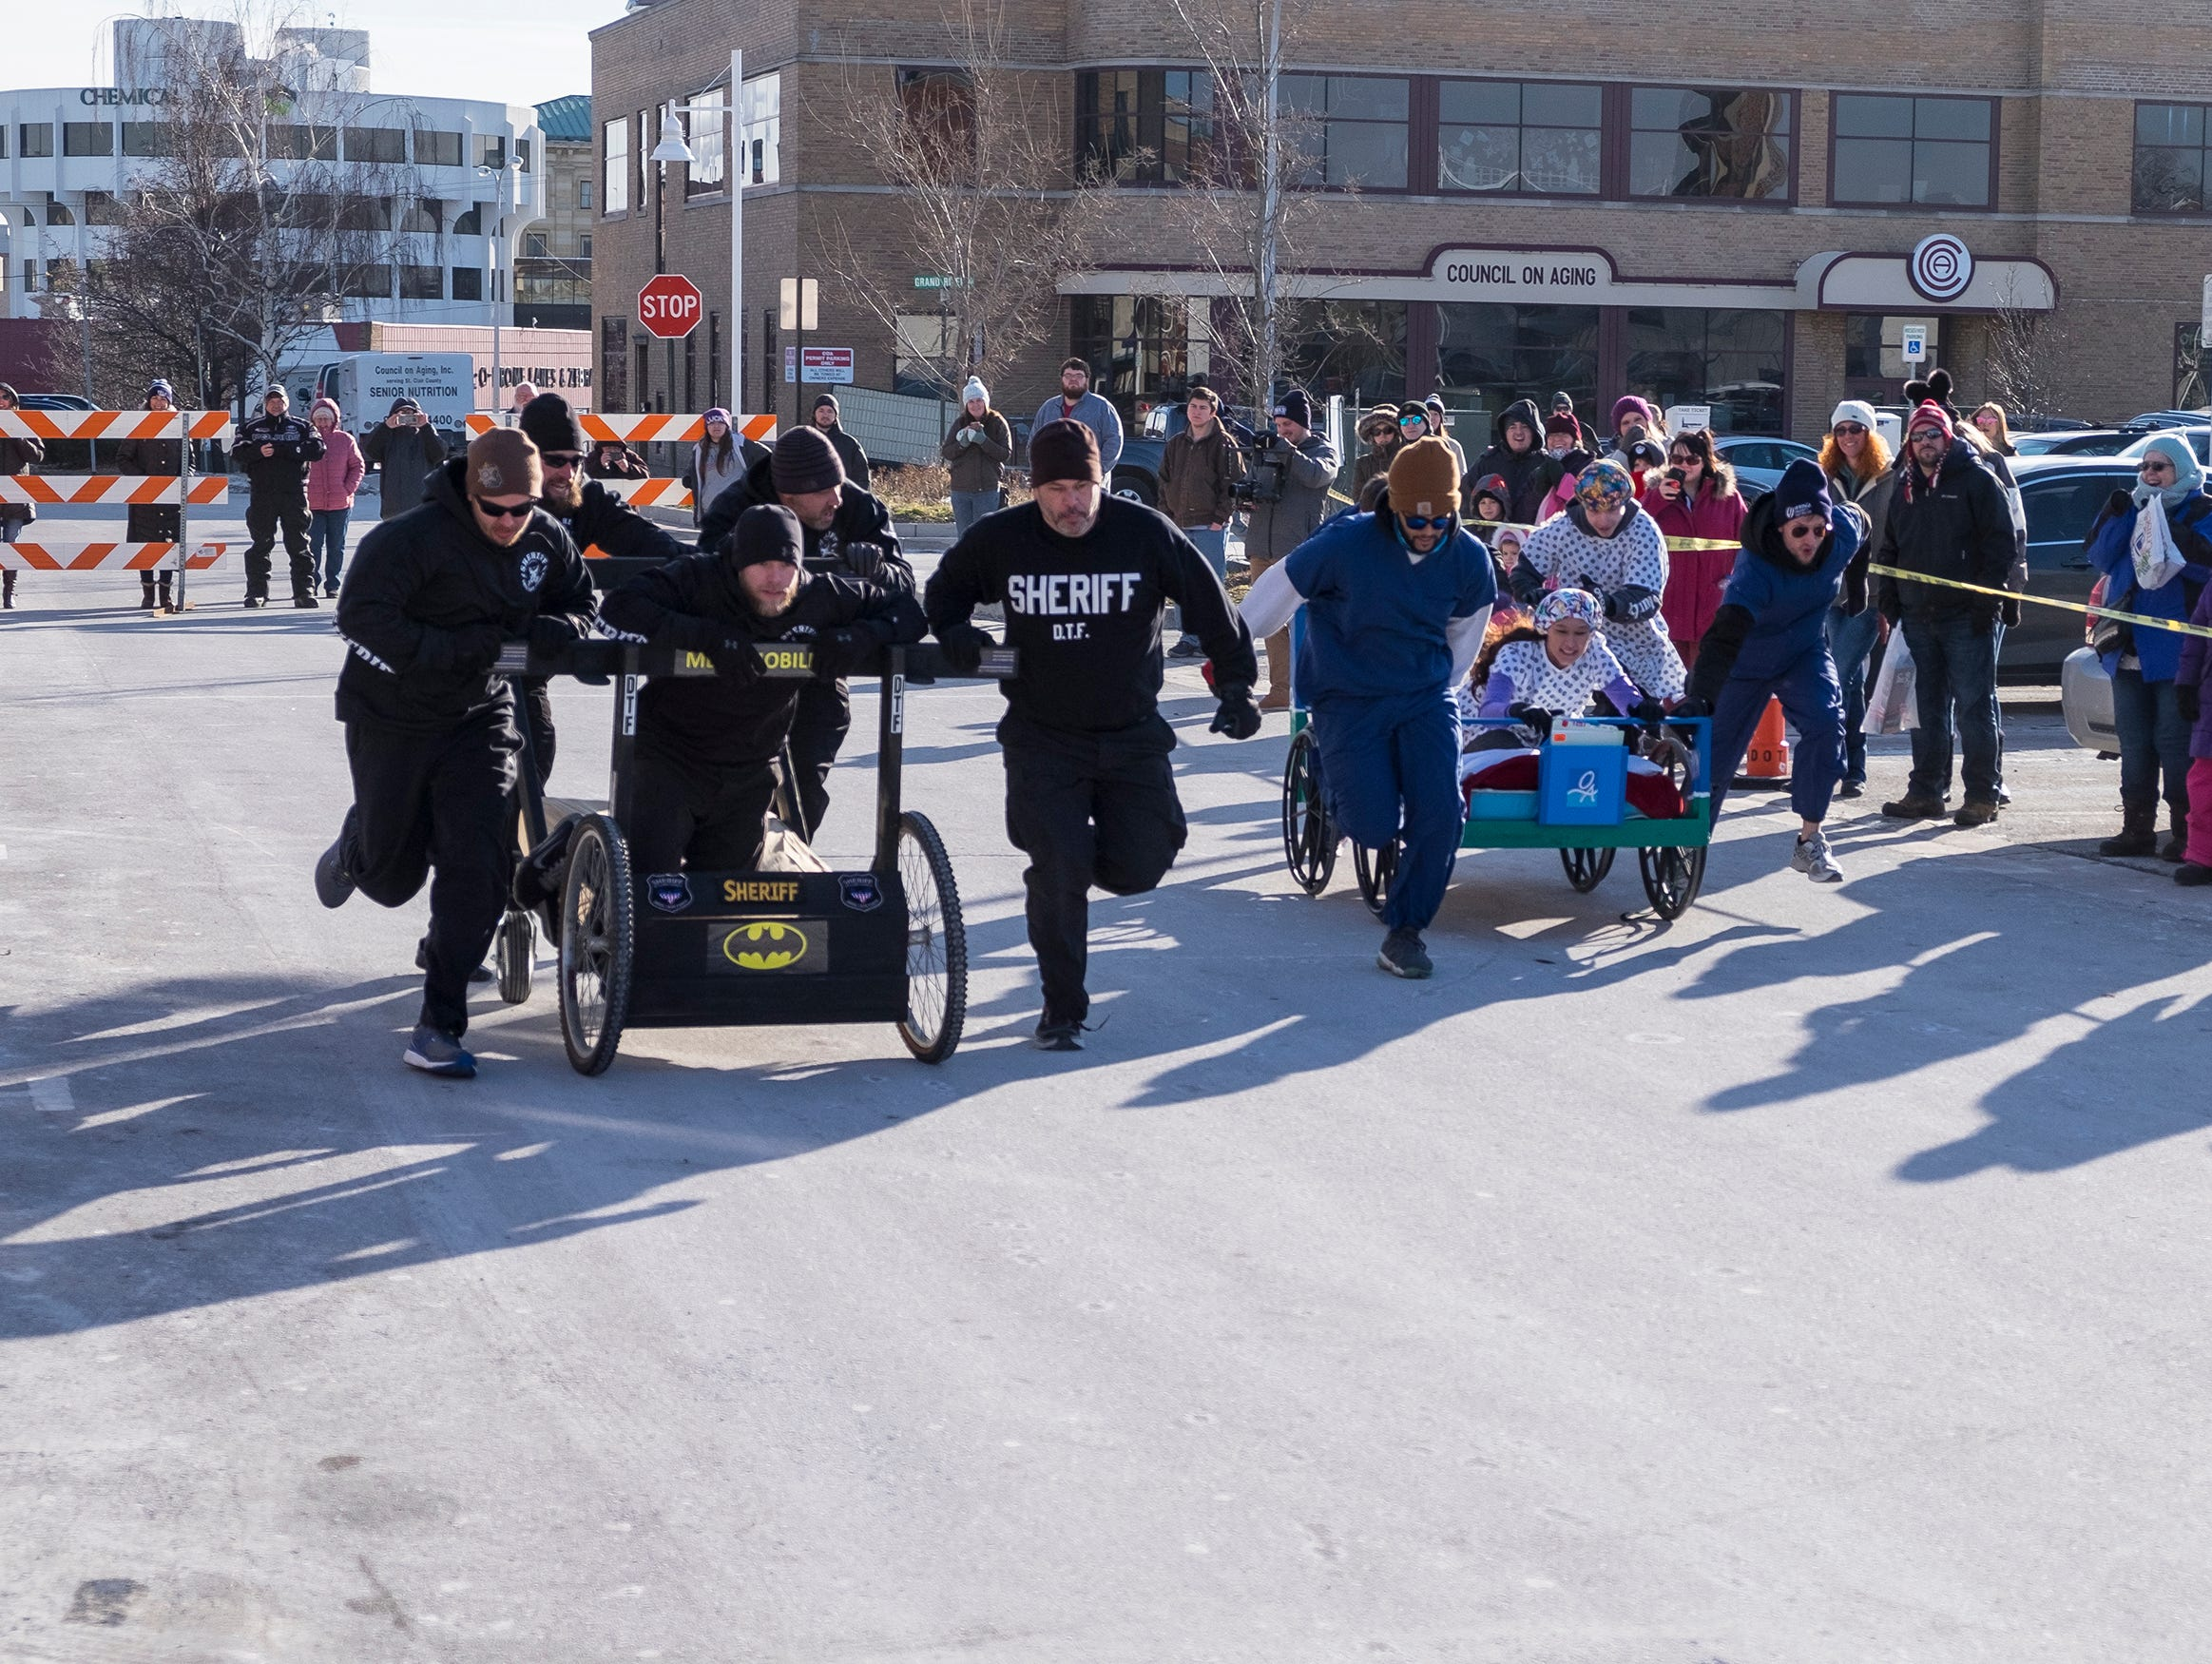 The St. Clair County Sheriff Department takes on the Orthopedic Associates team Saturday, Jan. 26, 2019 during the annual Port Huron Chilly Fest bed races.